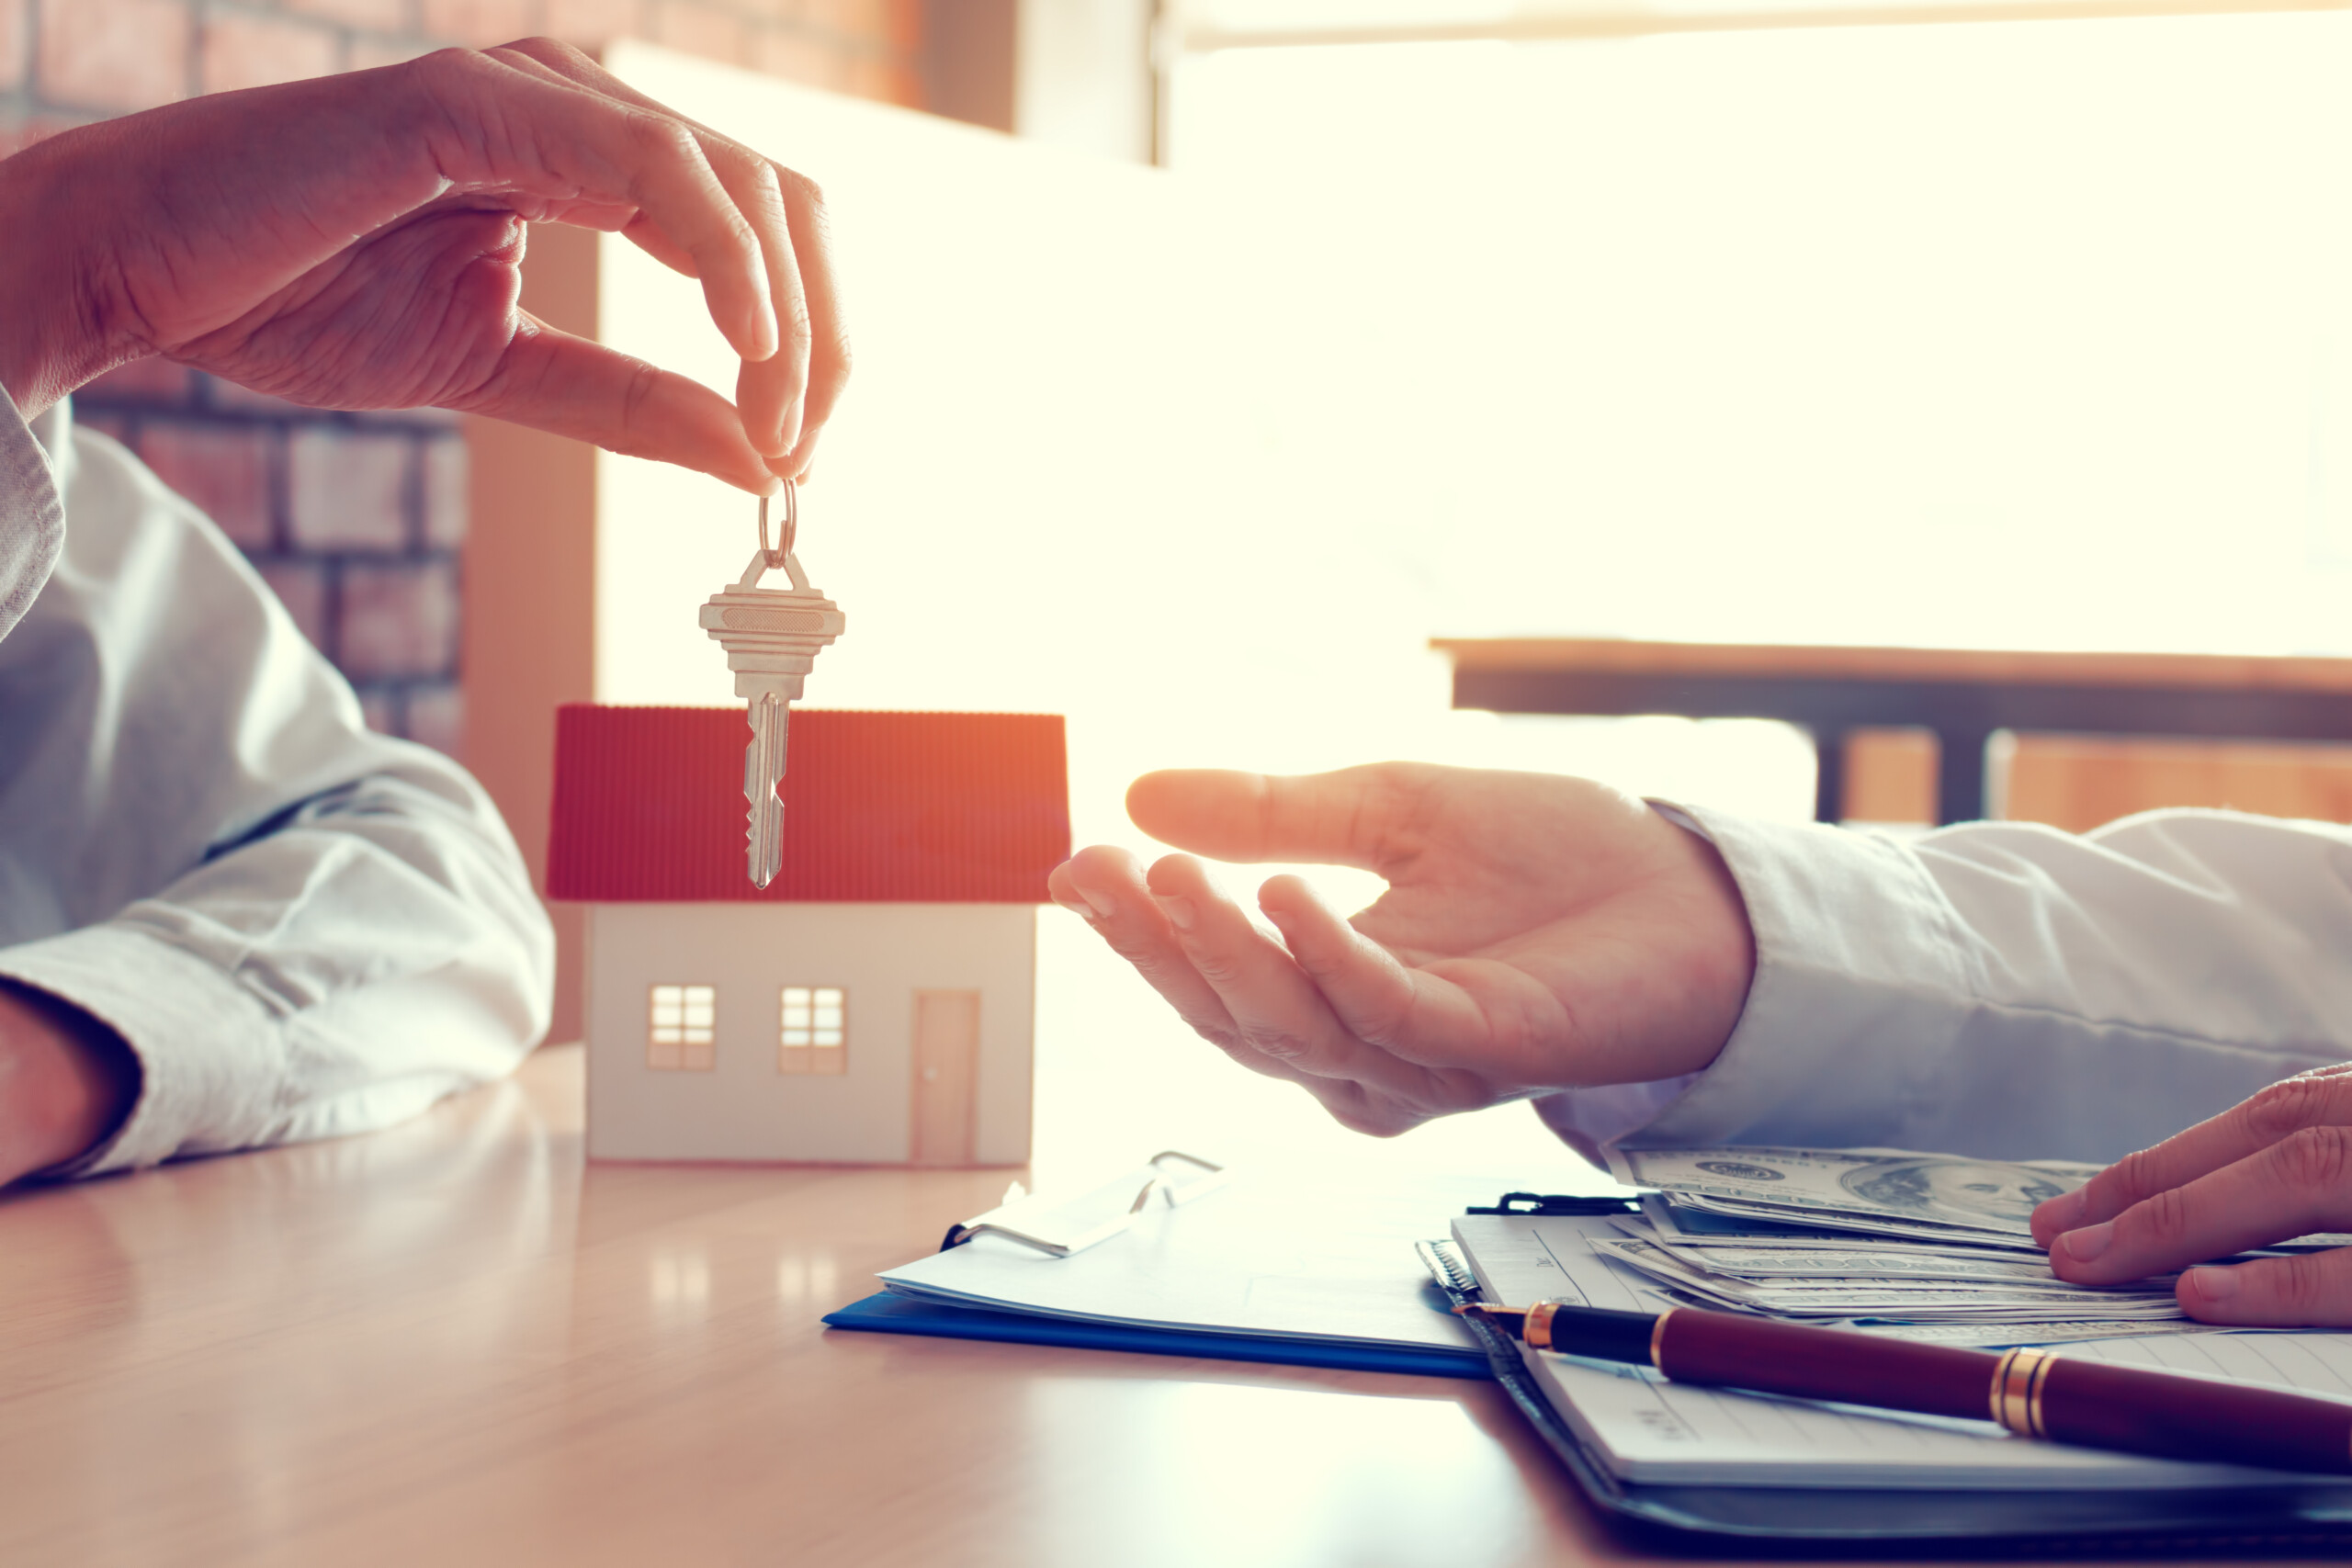 Do You Need Help Dealing With a Bad Landlord?